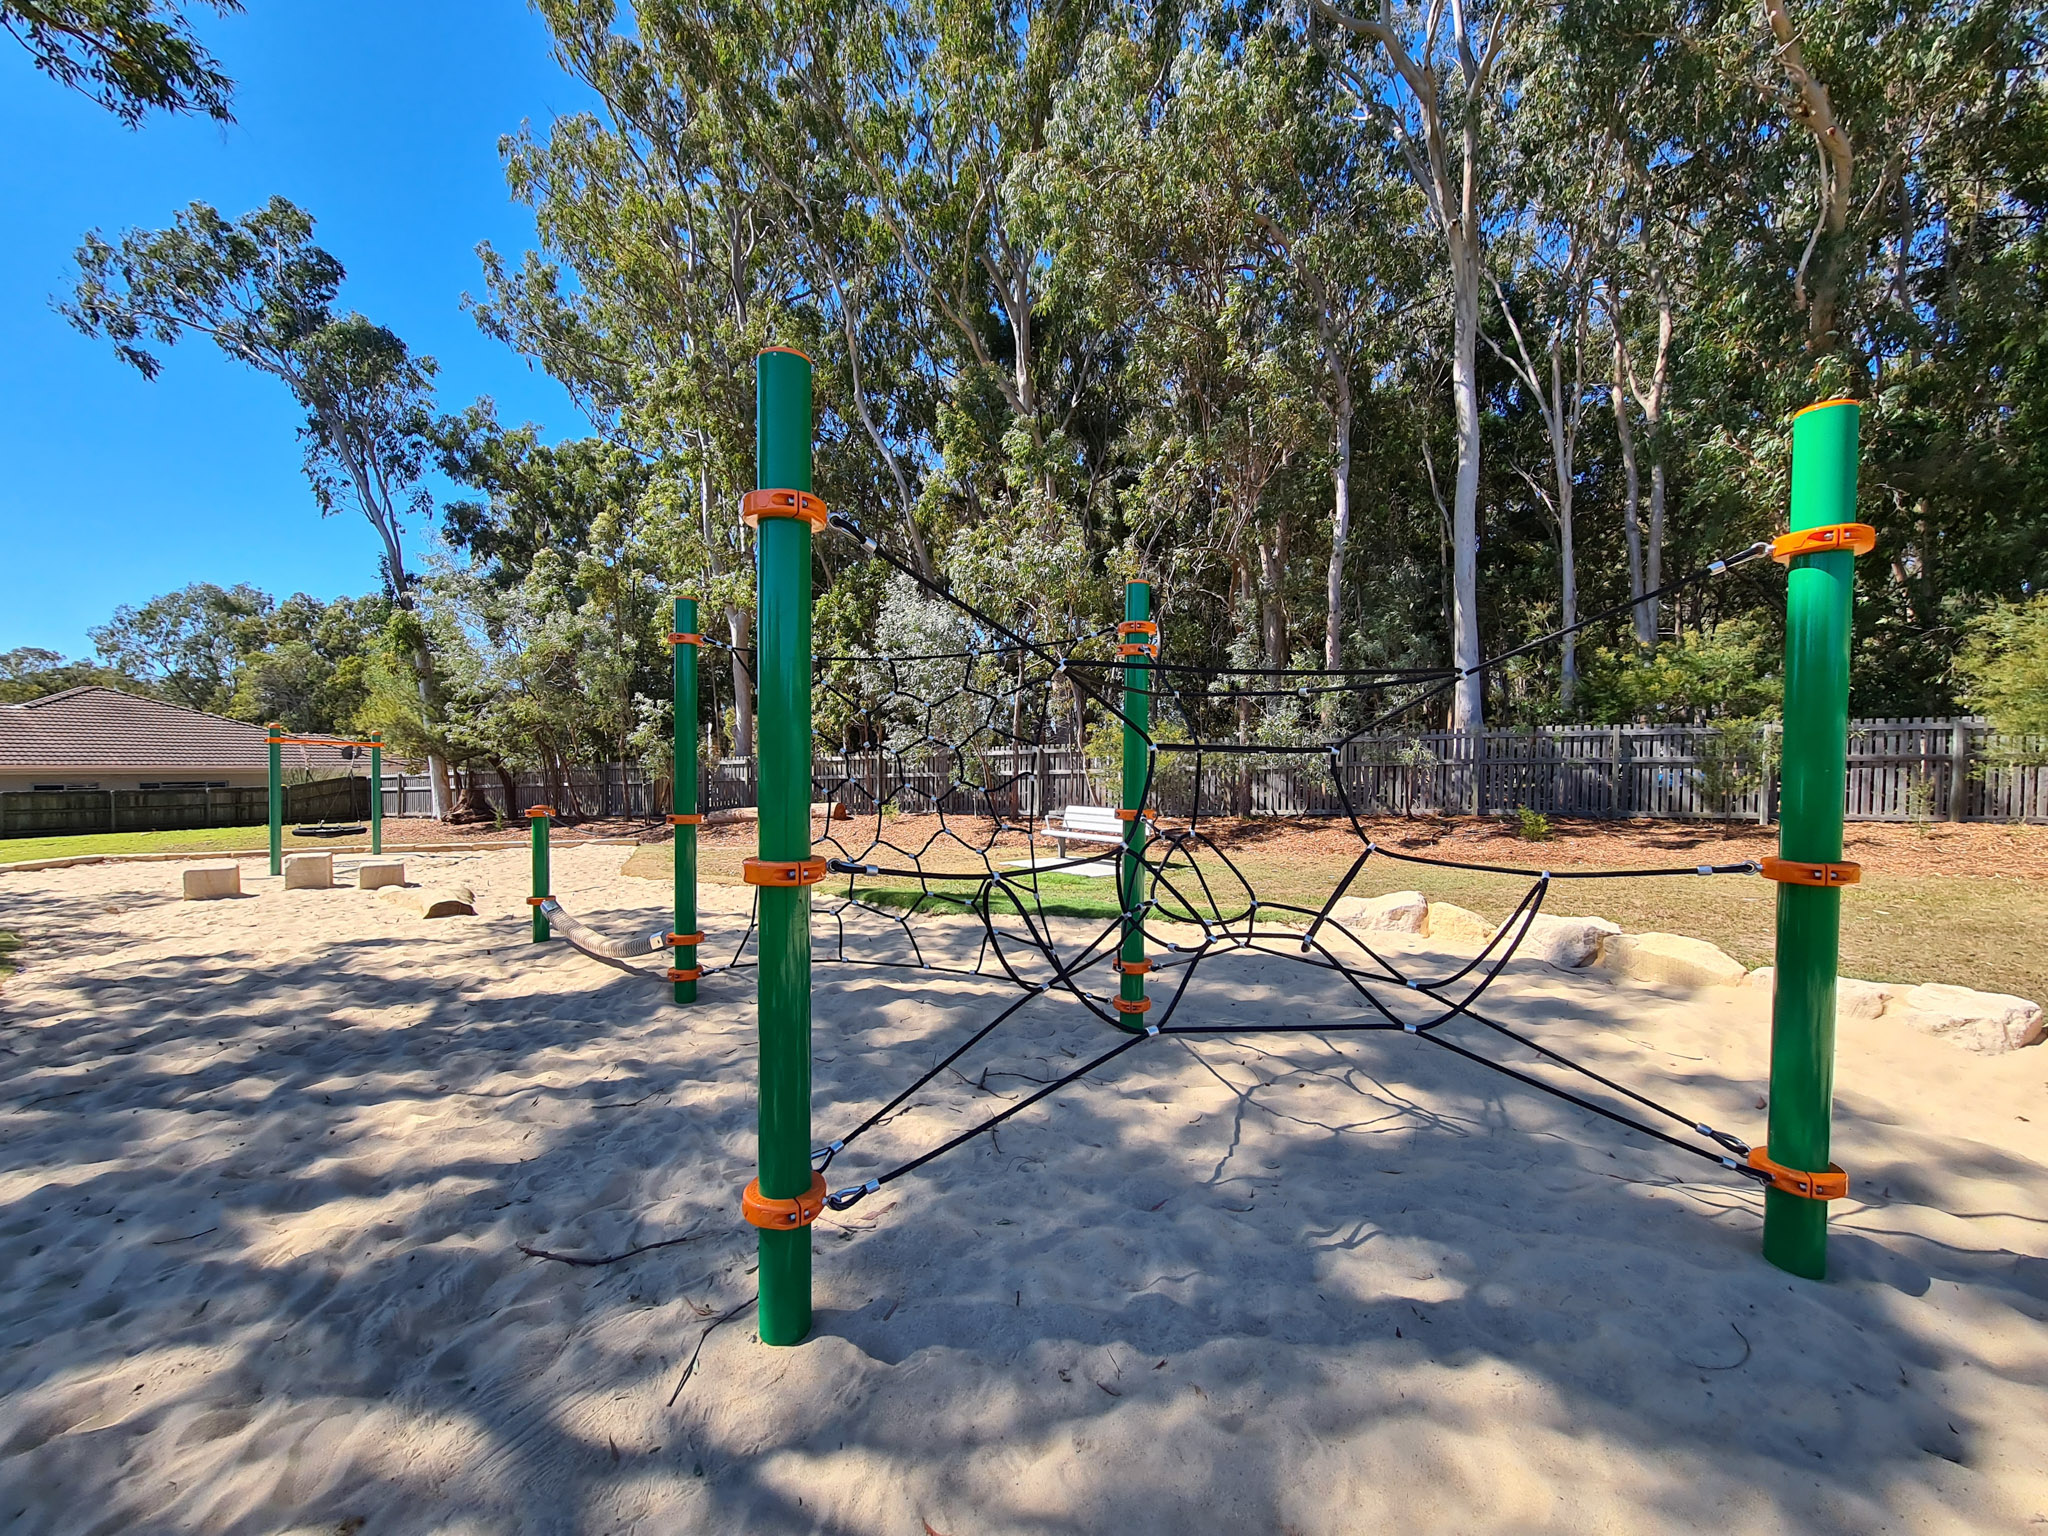 riley-peter-place-park-rope-play-4